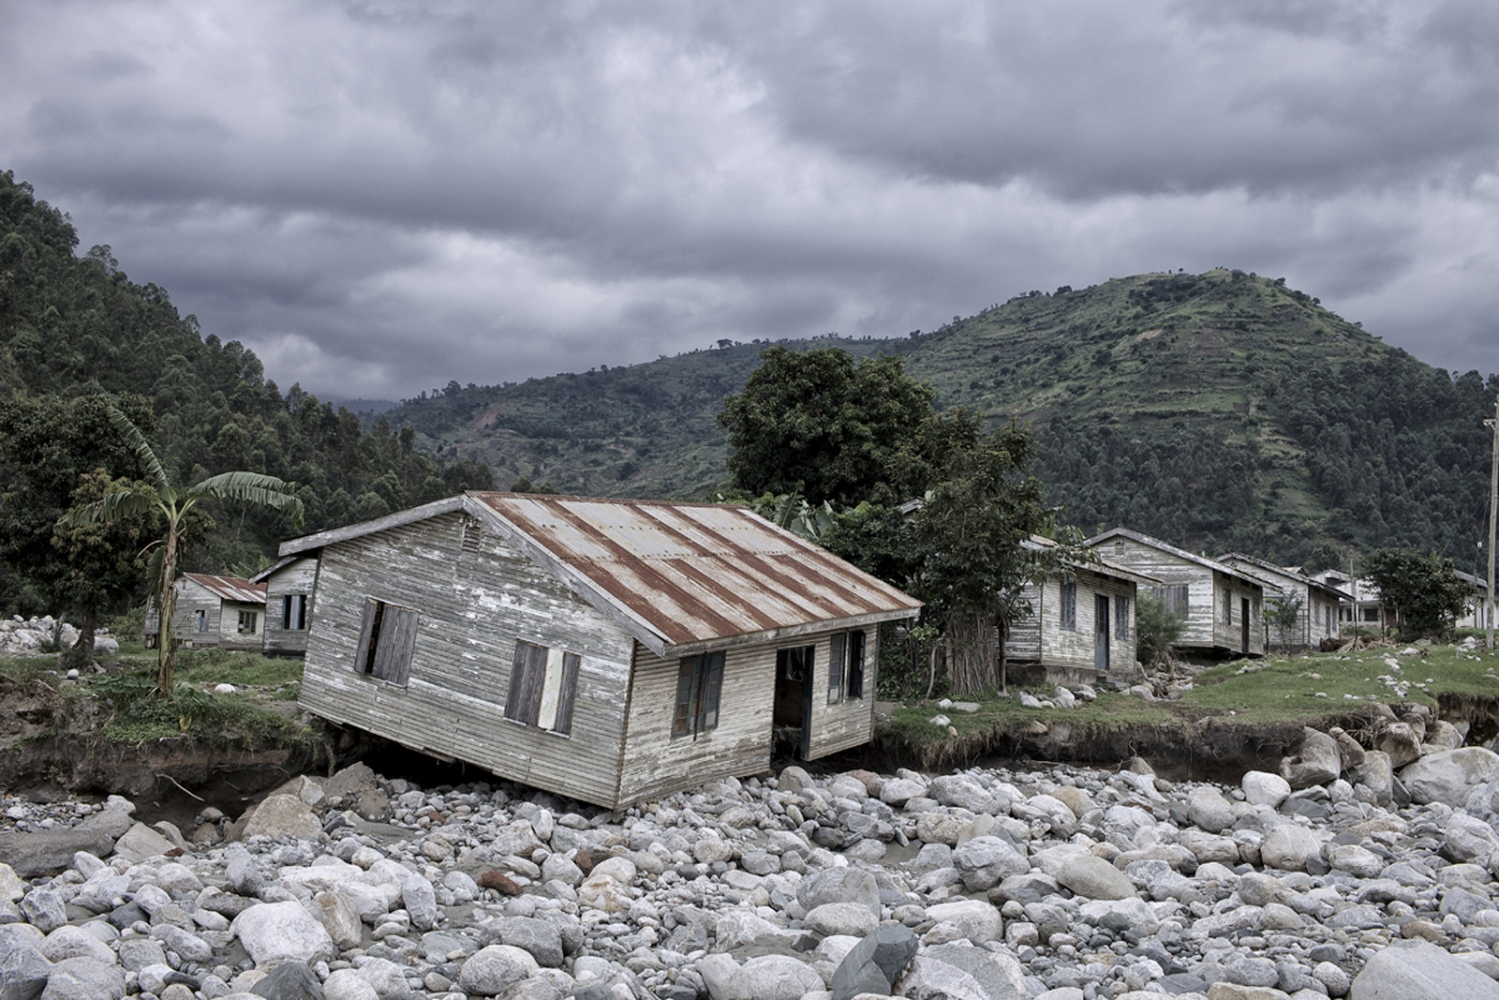 Art and Documentary Photography - Loading Fotovisura Grant 2015_ABANDONED after the fury of the flood_010.JPG